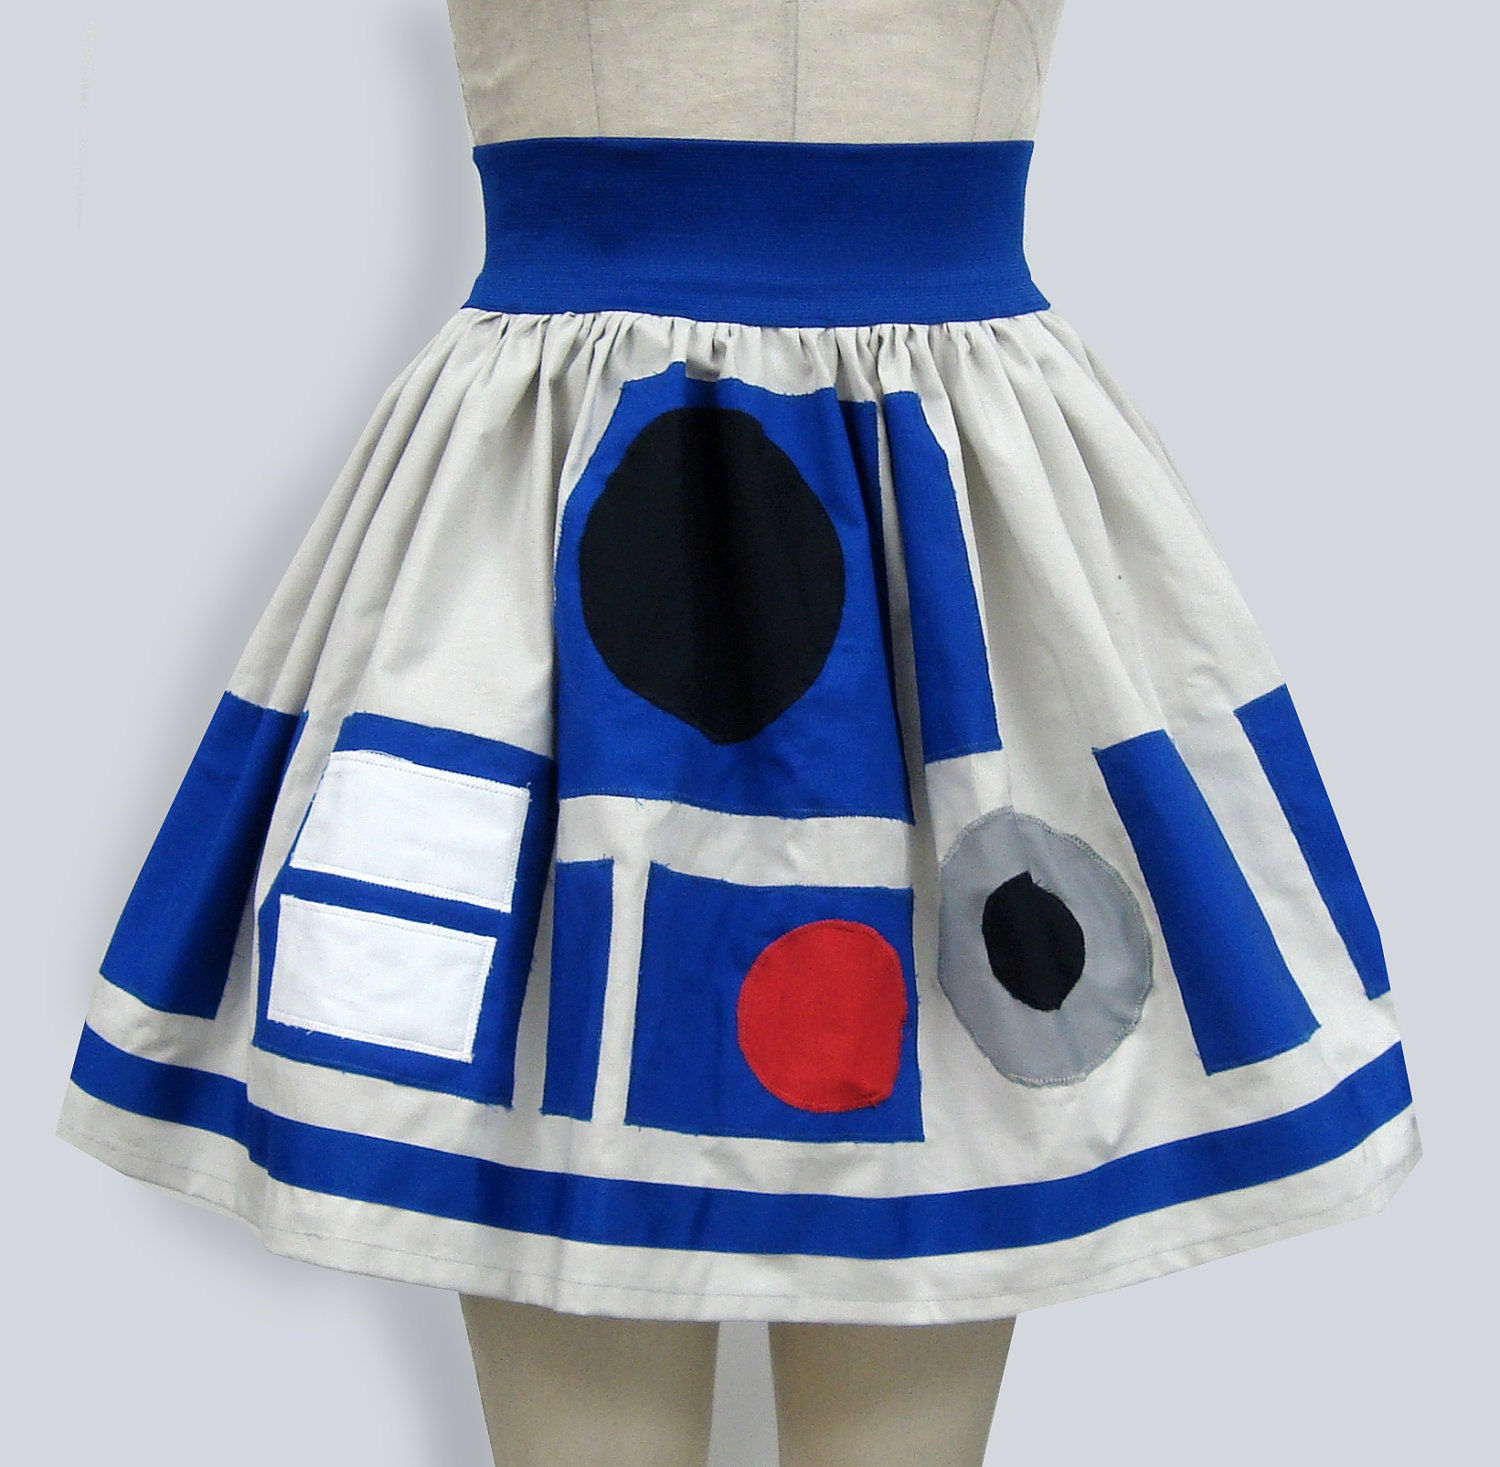 R2D2 Star Wars Inspired Full Skirt